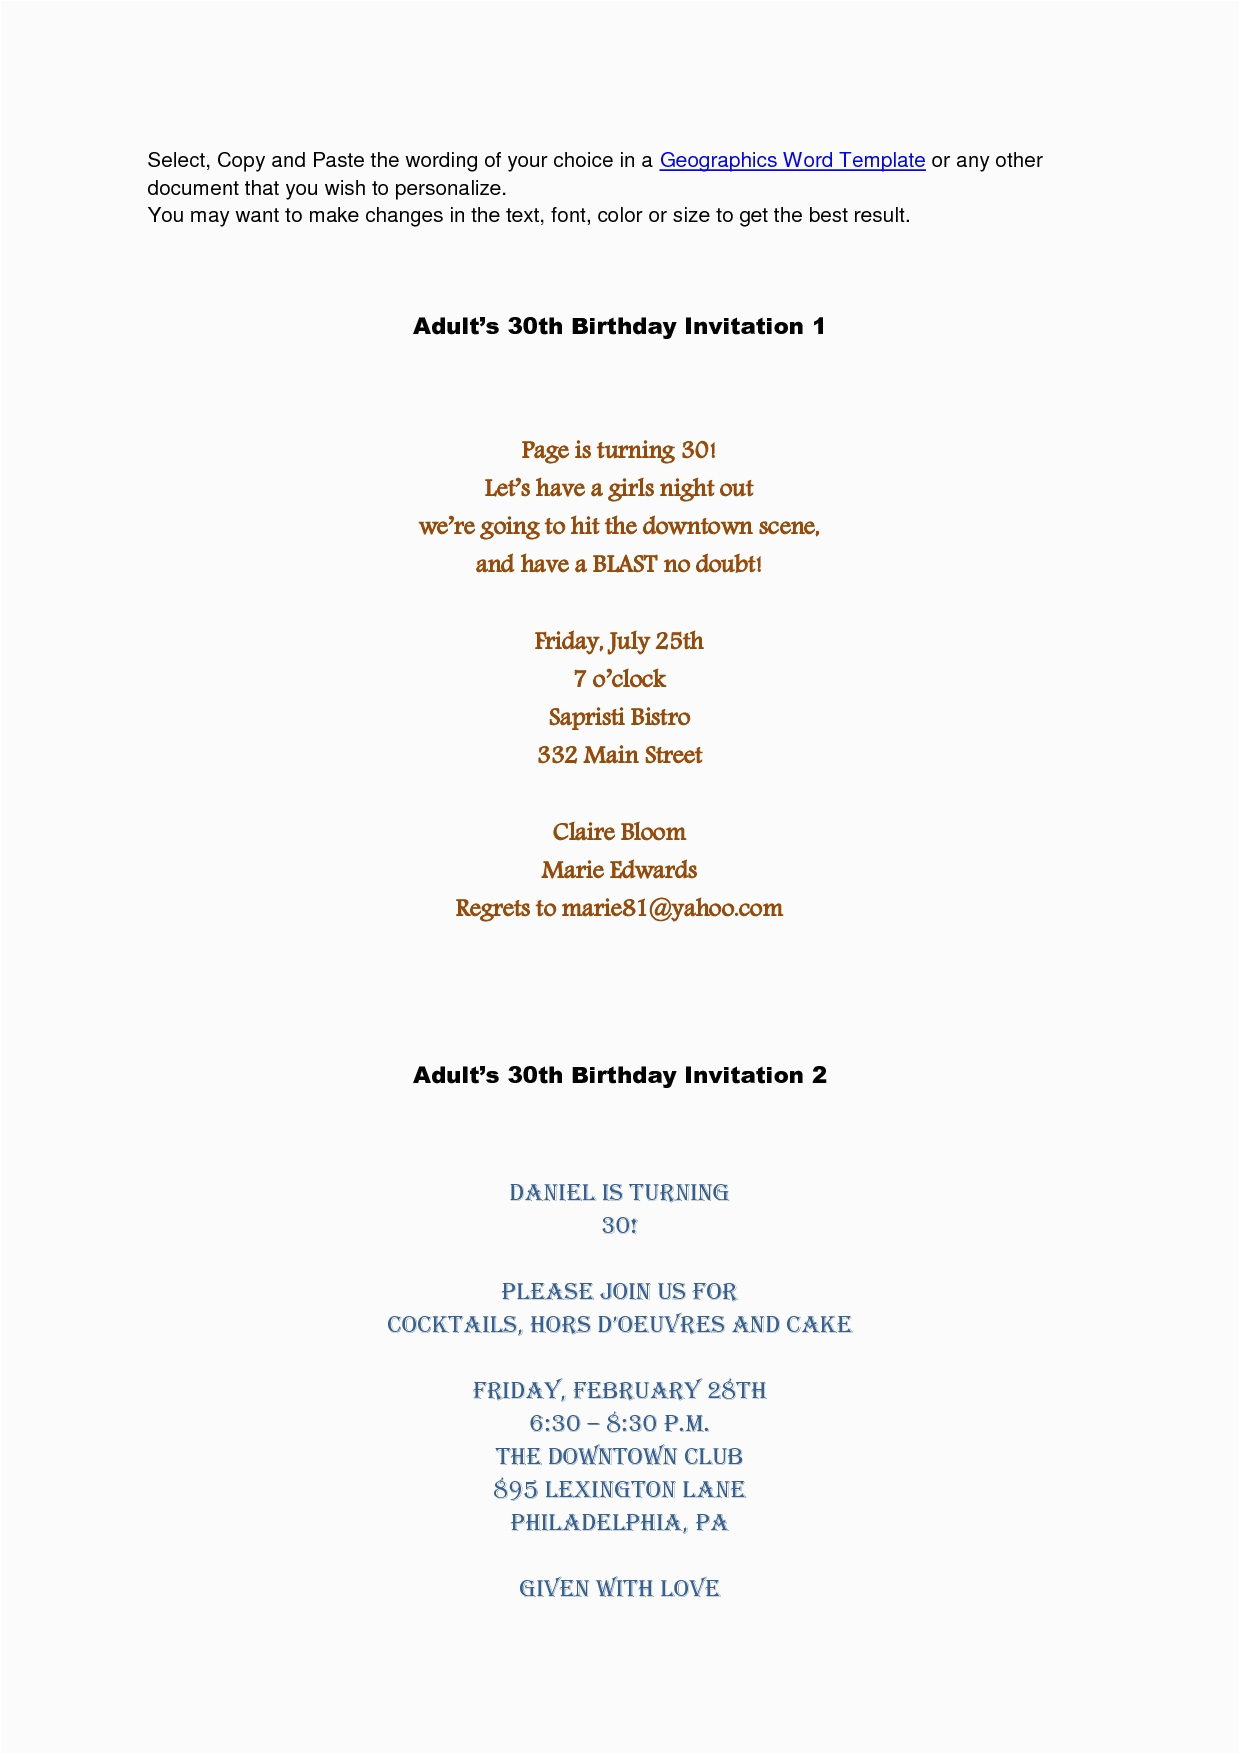 Birthday Party Invitation Message For Adults Adult Wording Template Resume Builder